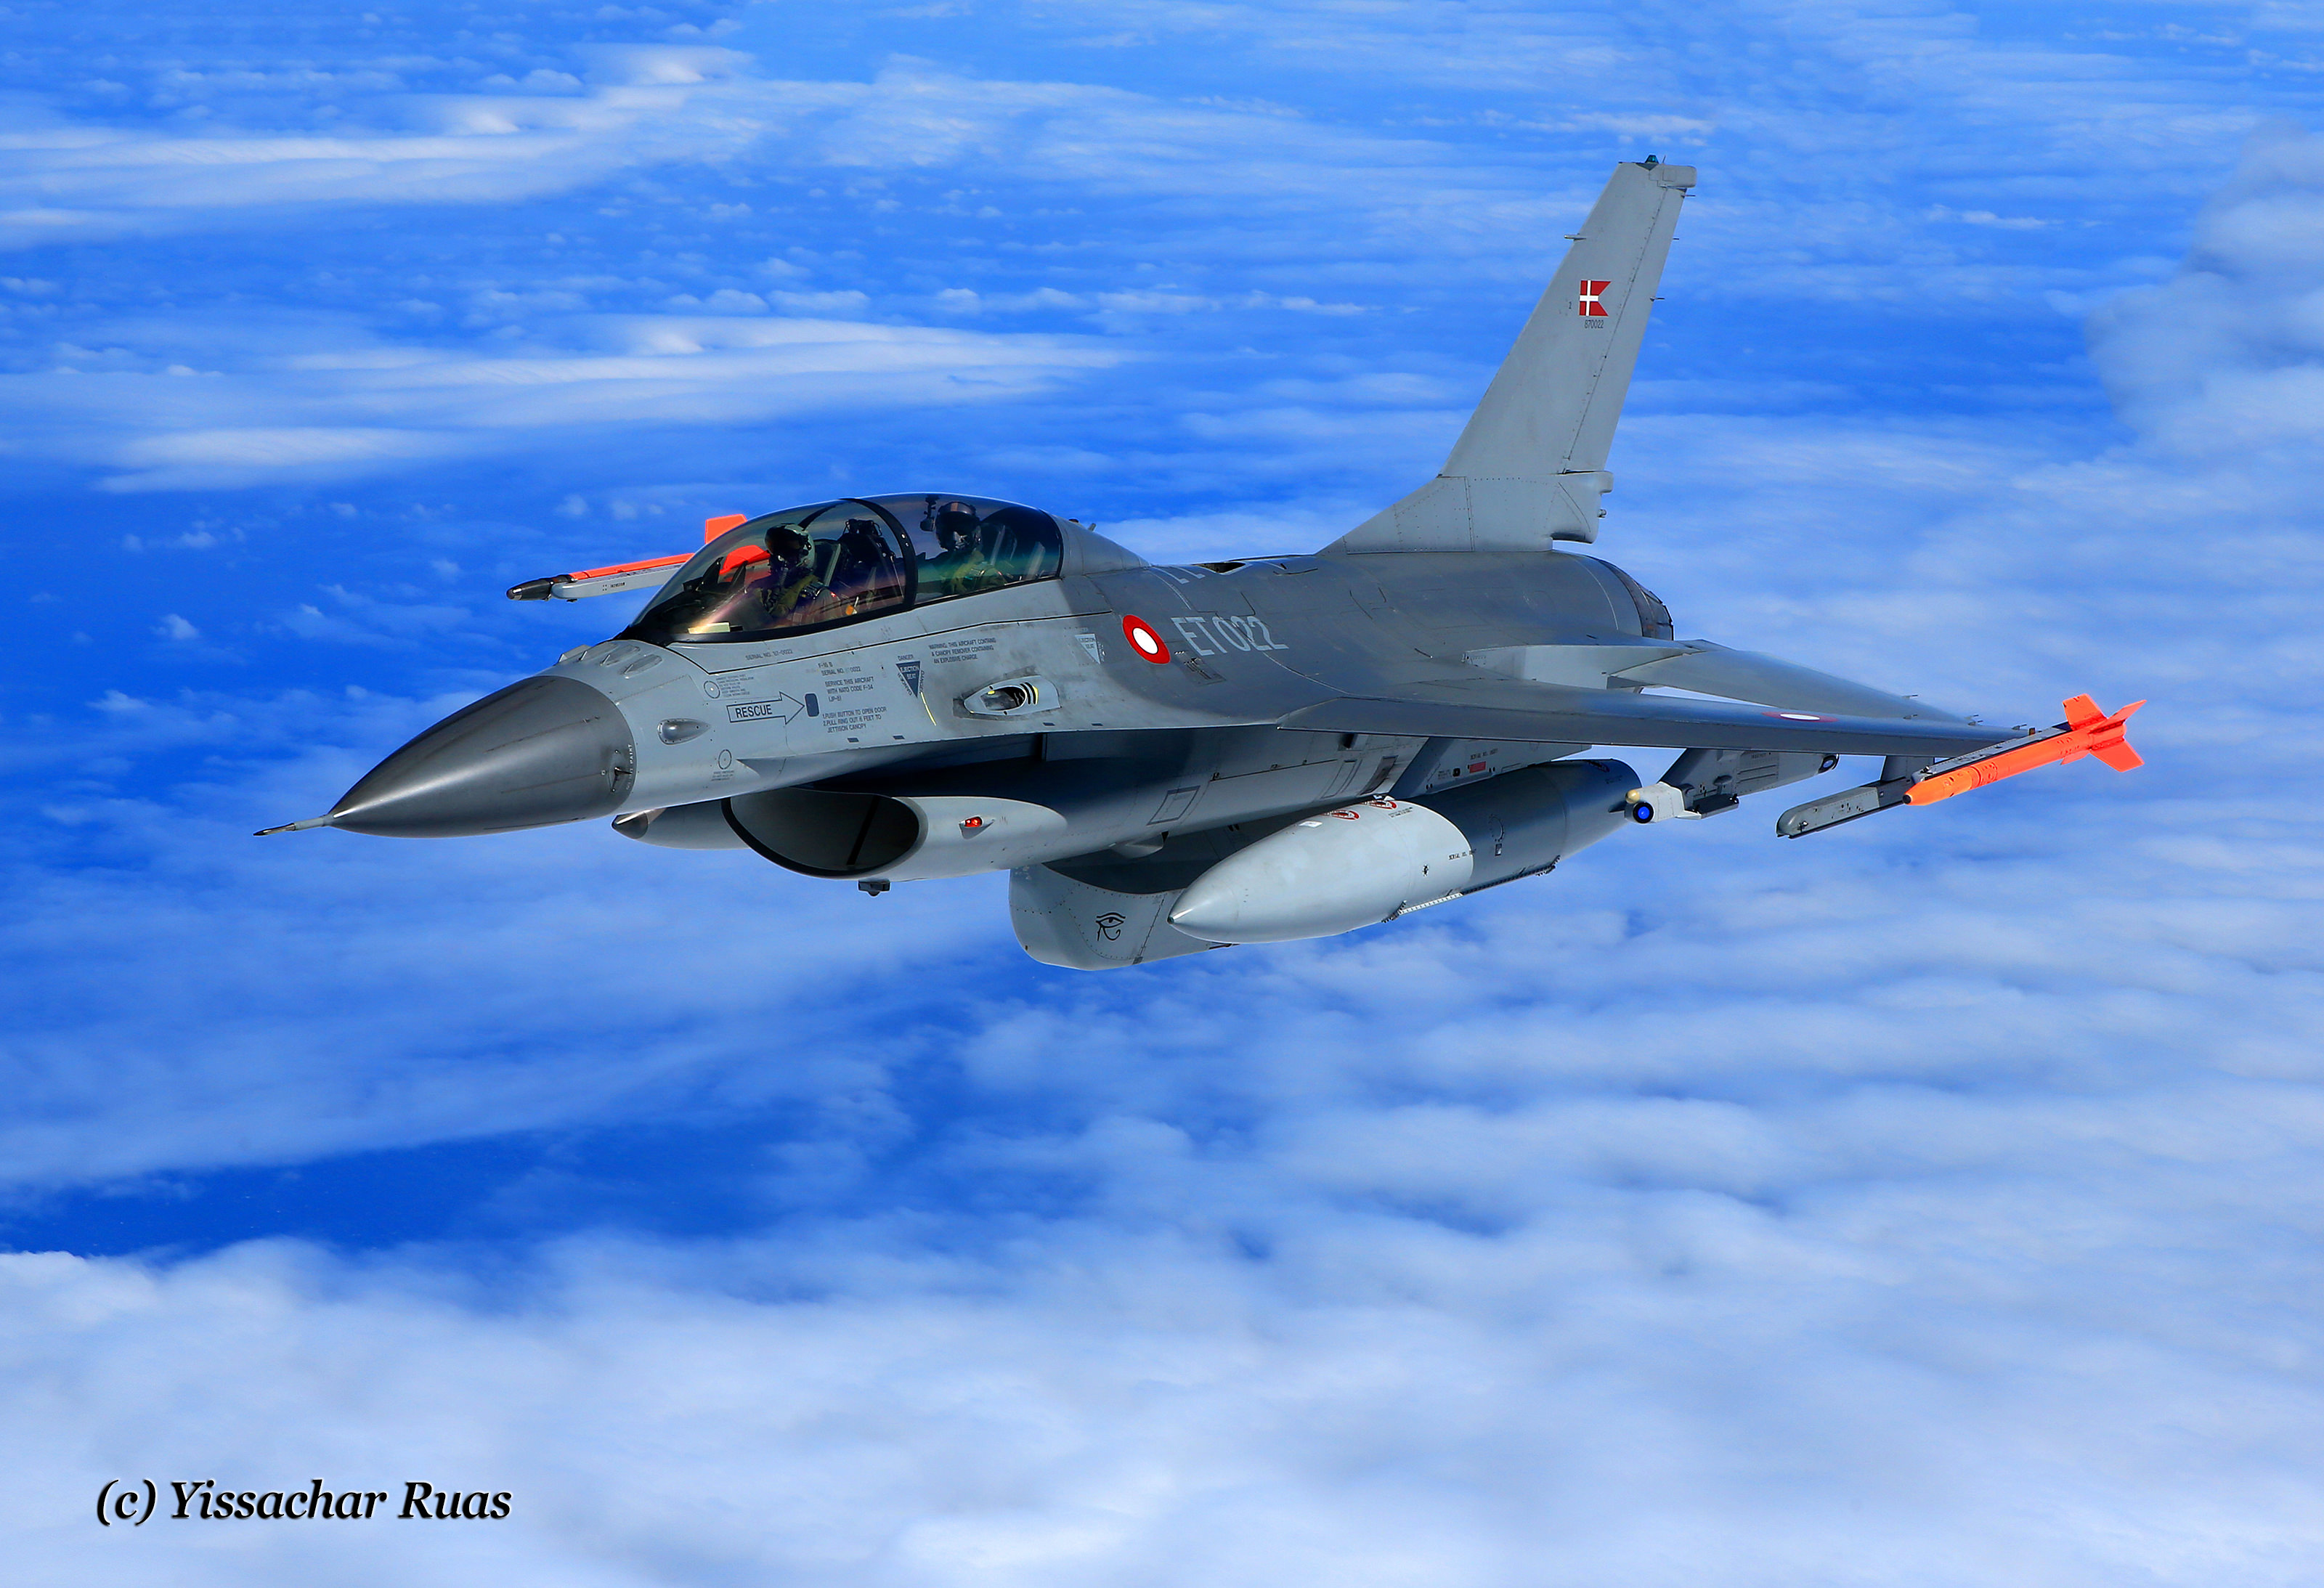 IMG_2623-2-RDAF-F-16-Viper-on-Patrol-over-the-North-Sea.jpg